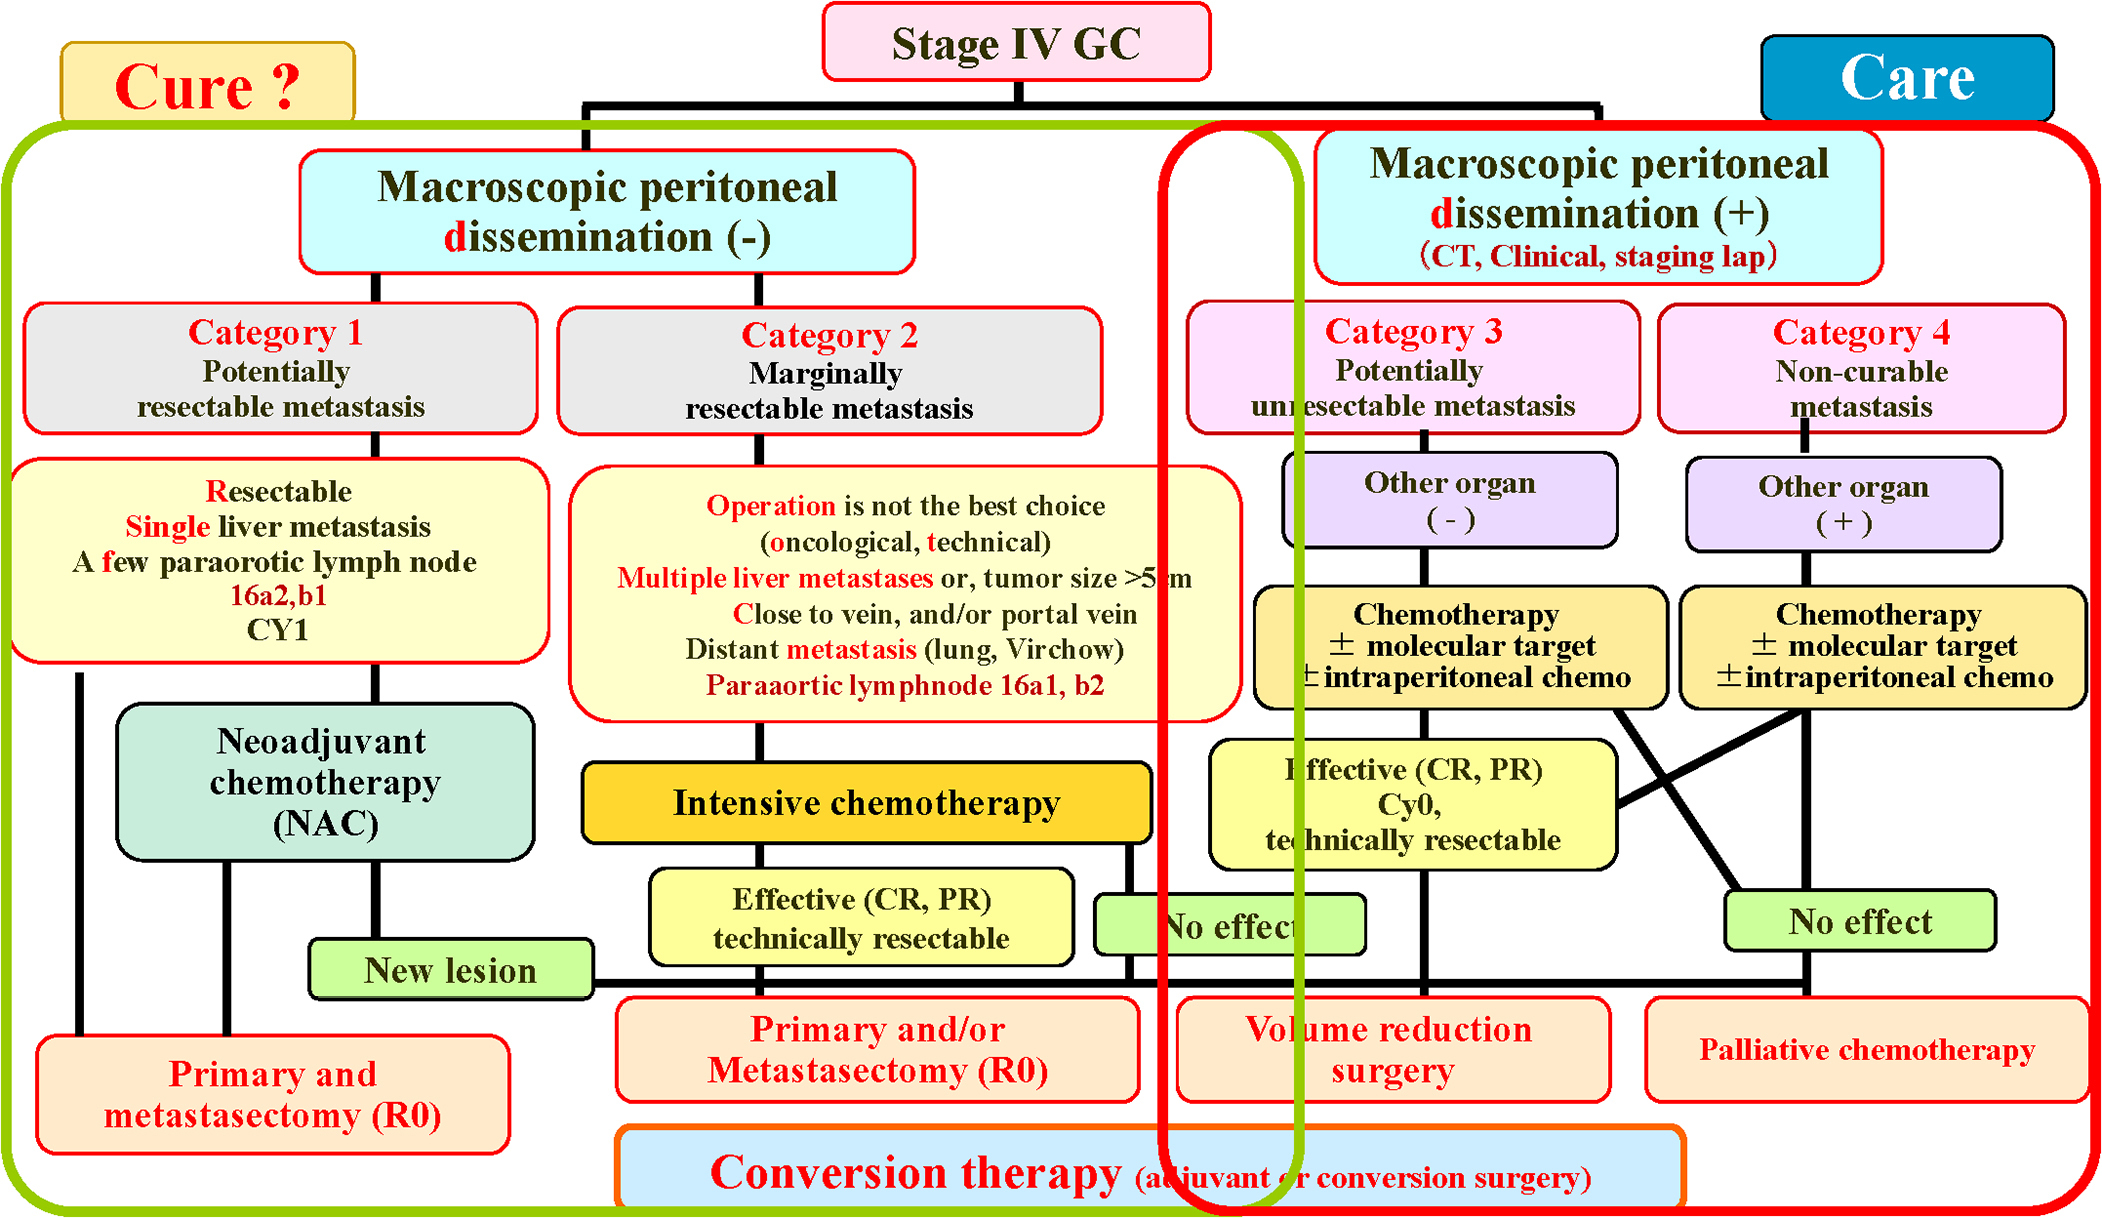 Conversion therapy for stage IV gastric cancer—the present ...